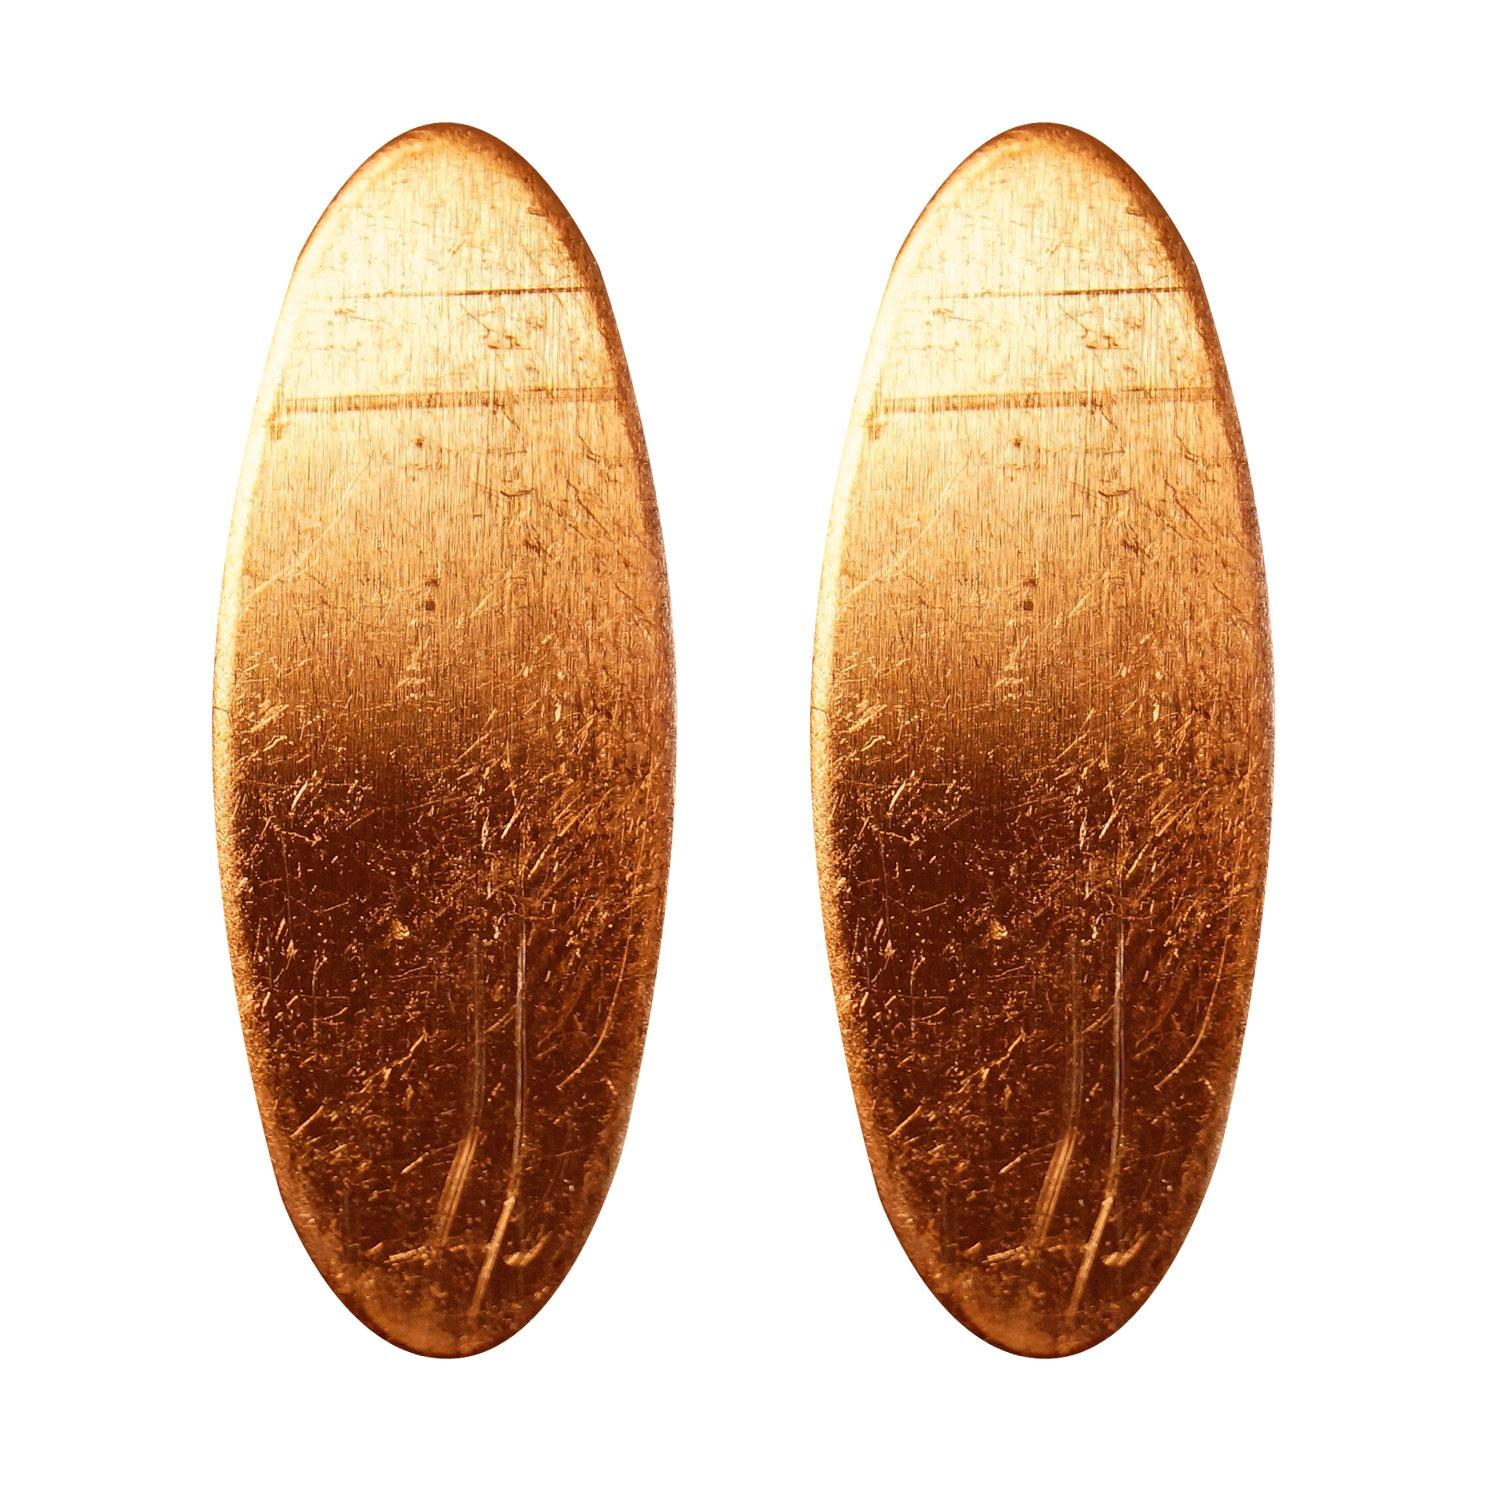 Oval Copper Shape - 2 Pack